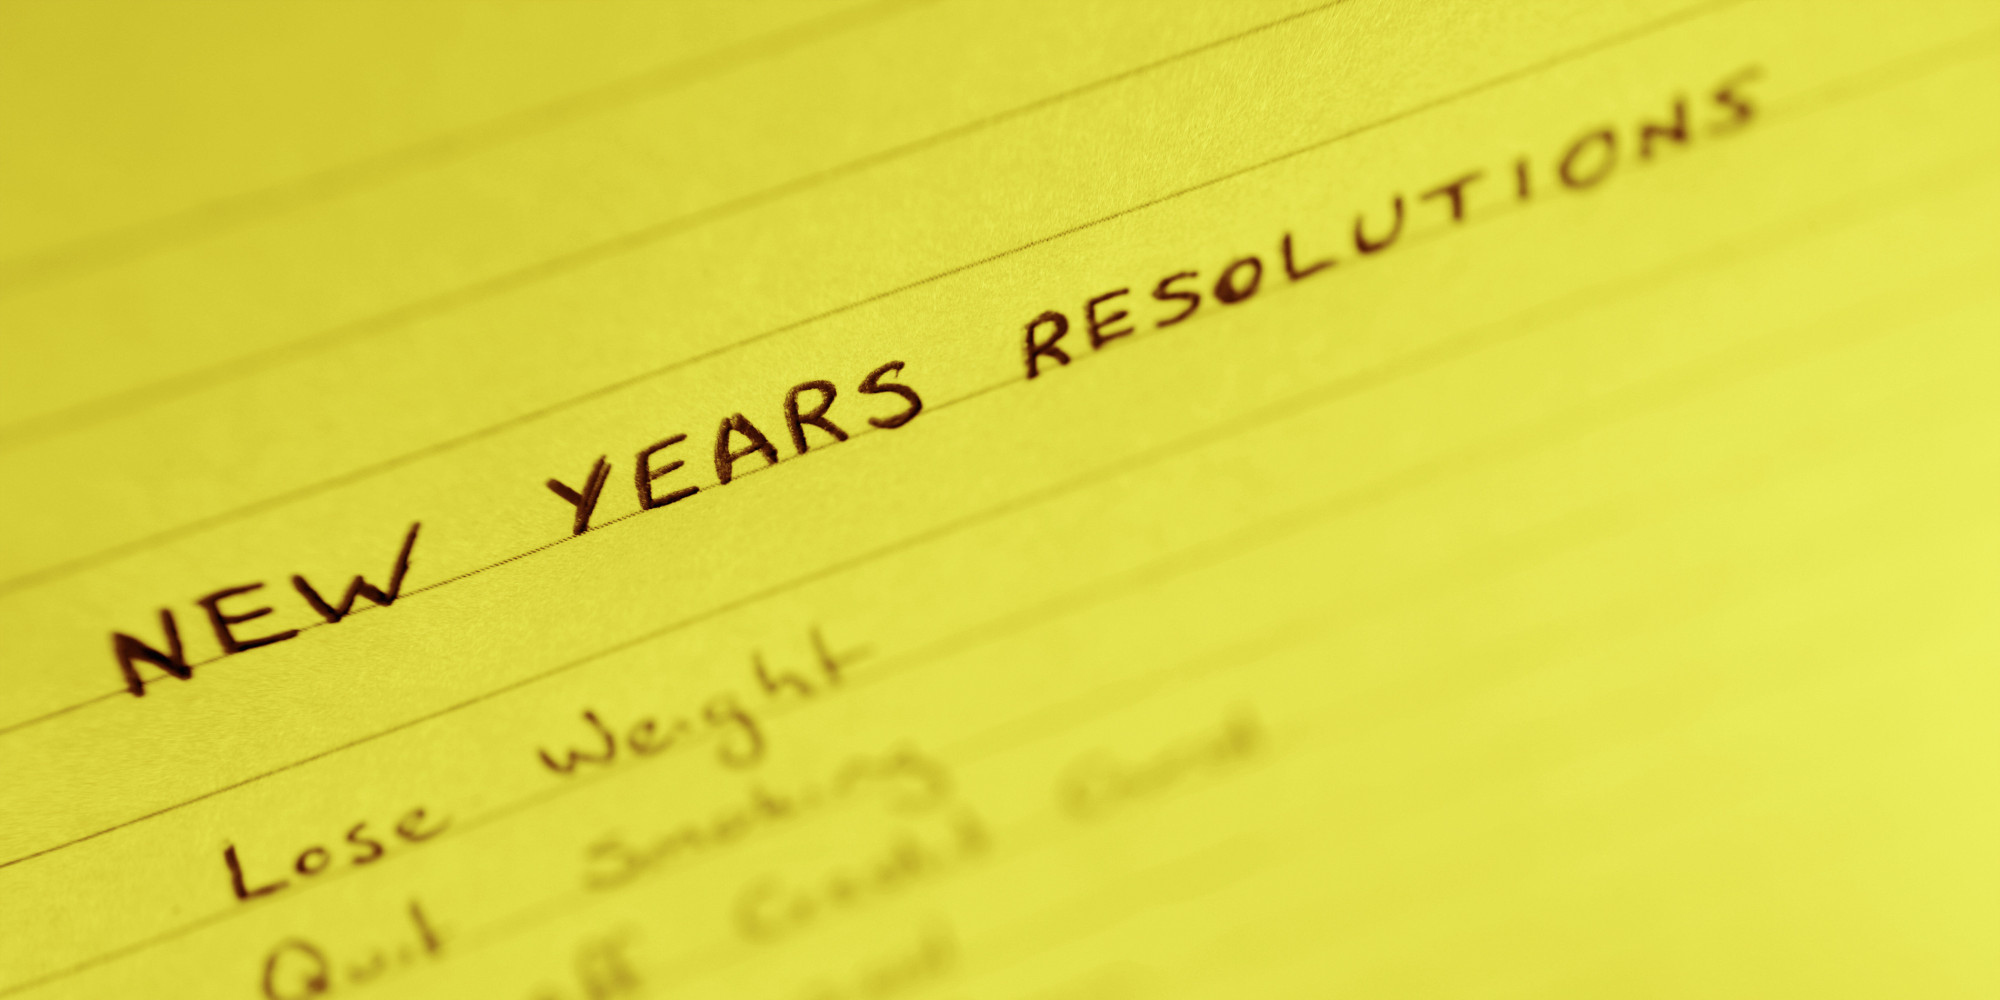 essays about new years resolution Free new year papers, essays which will help you to get ready for the new year resolution 1: learning the new things to come beforehand seo has always been a.